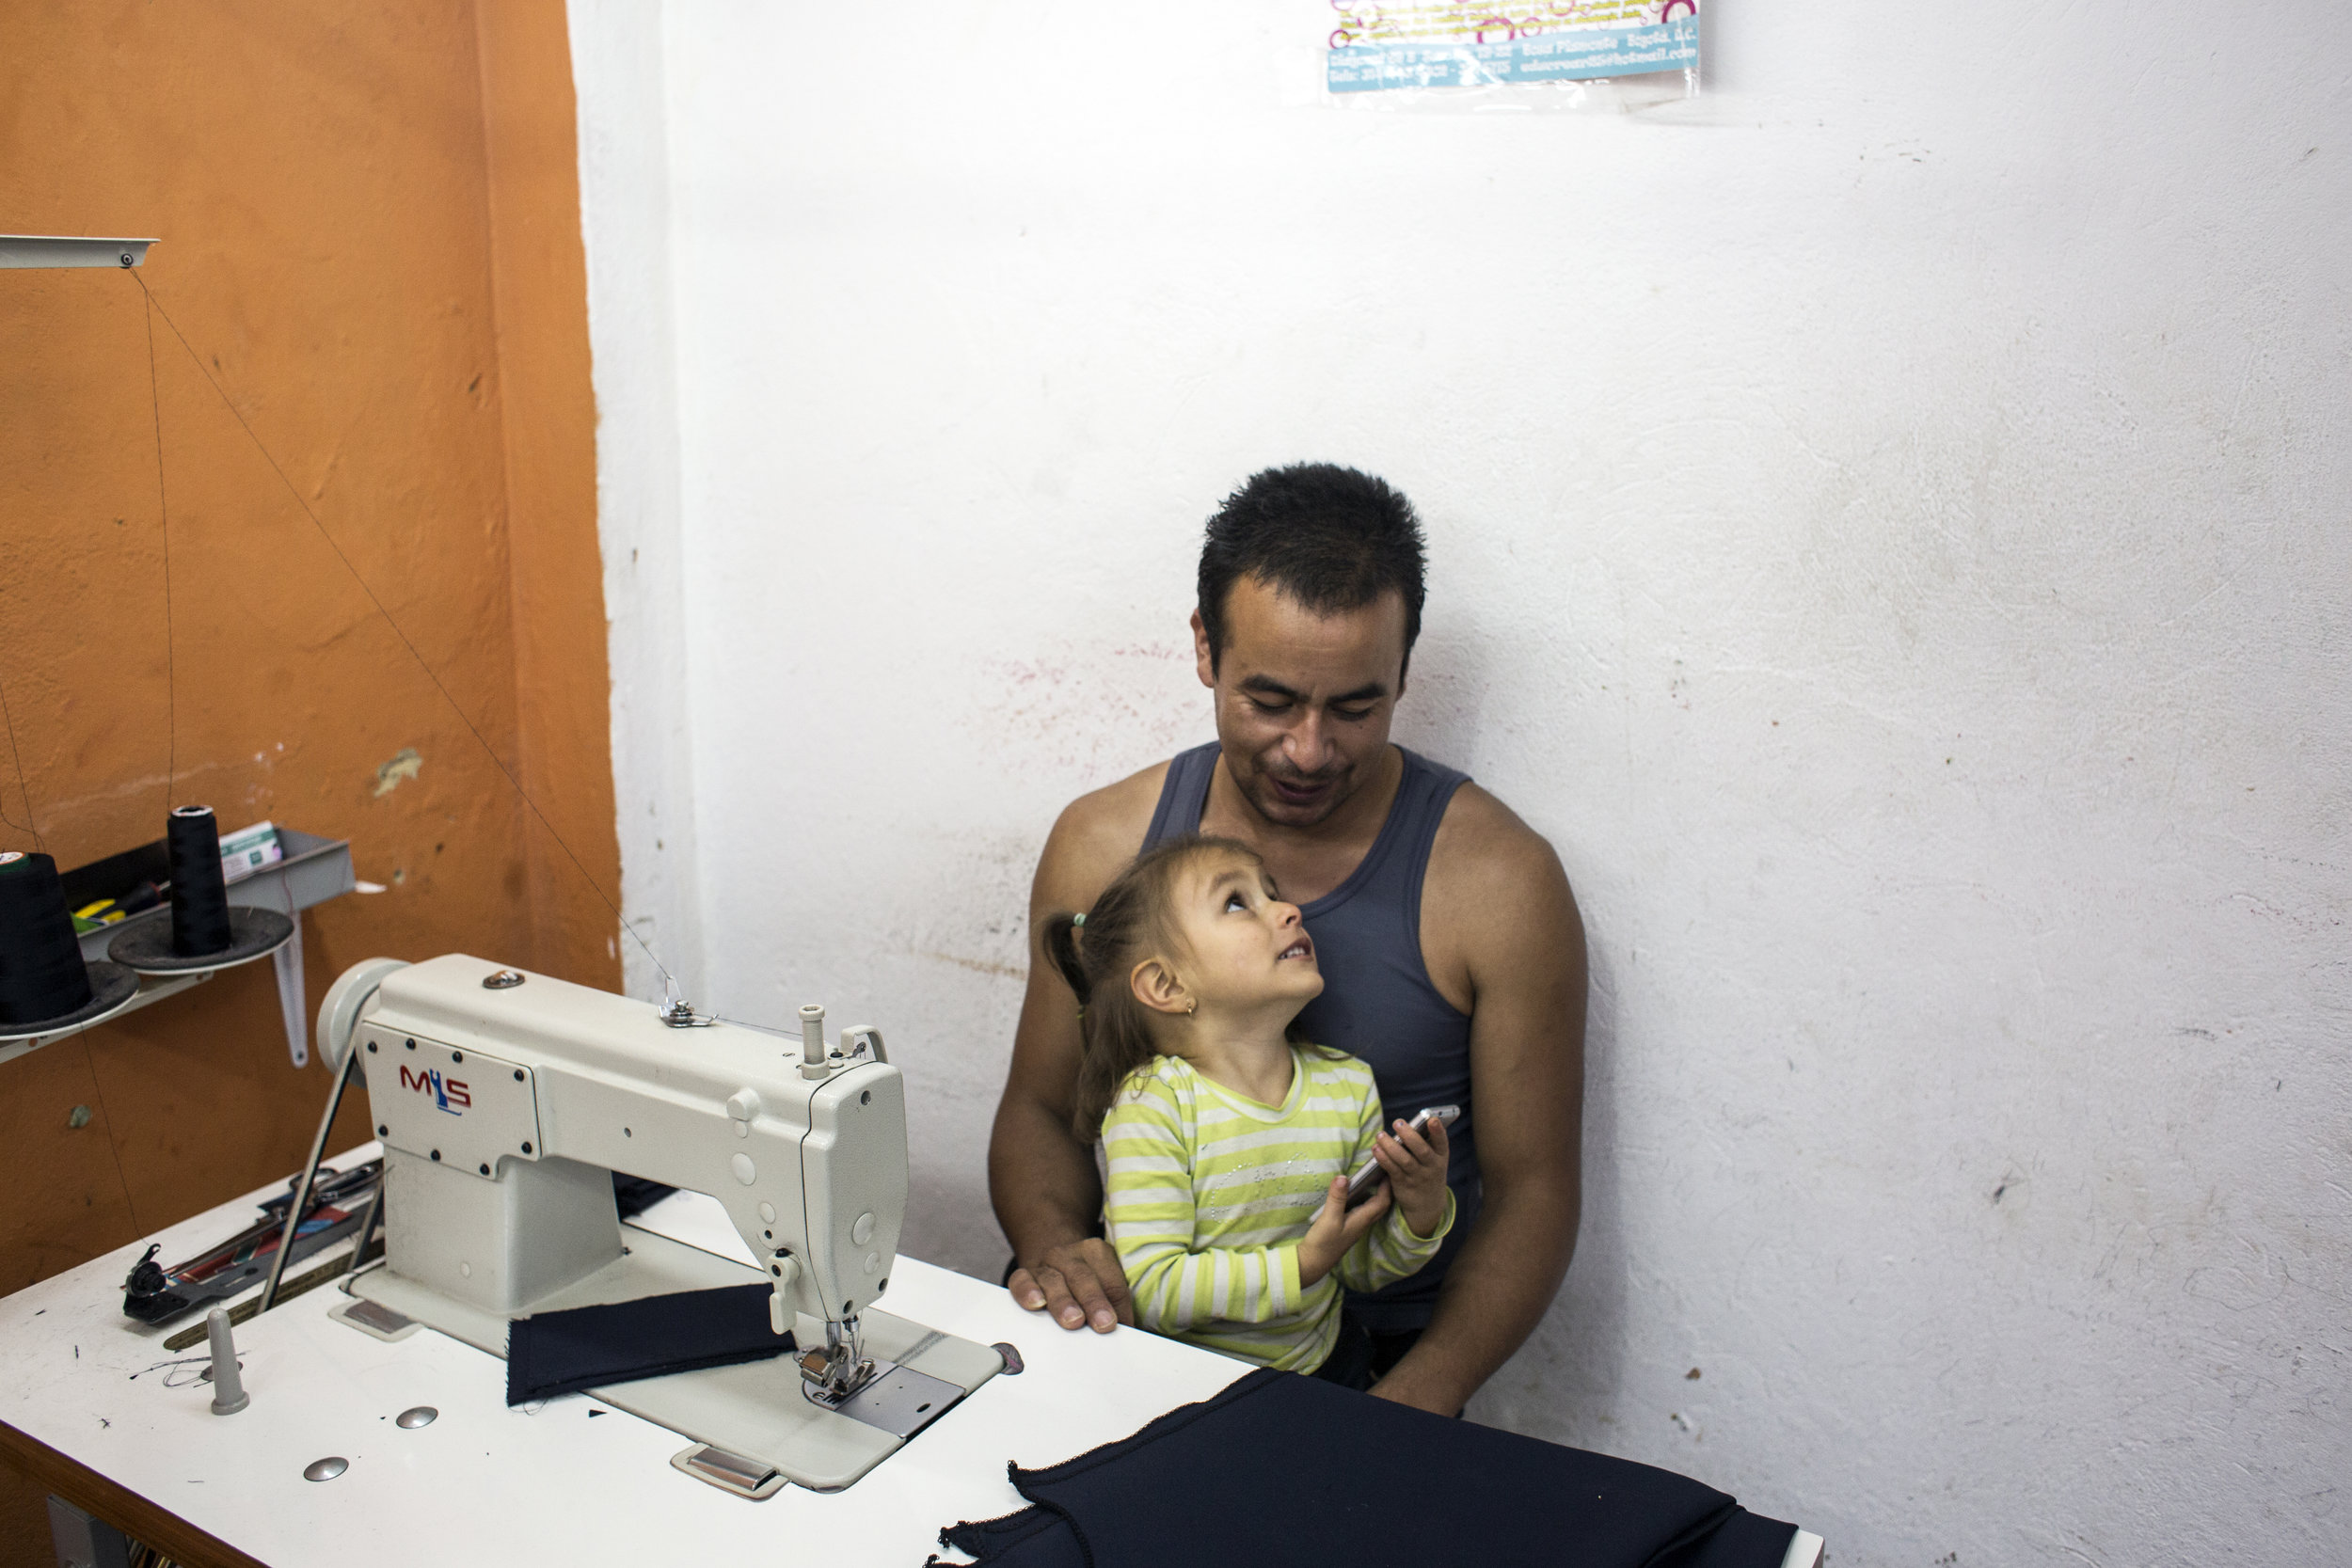 Milton Hernandez, 33, sits with his daughter, Dana Sofia Hernandez, 3, while at his clothing business, where he sews pants and jackets for a brand on September 21, 2016, in Bogotá, Colombia. Hernandez was 19 when he joined the FARC and demobilized 10 years later, after losing a leg to a grenade. He says he had a rough start integrating back into society but is happy he is financially stable and working for something he enjoys.